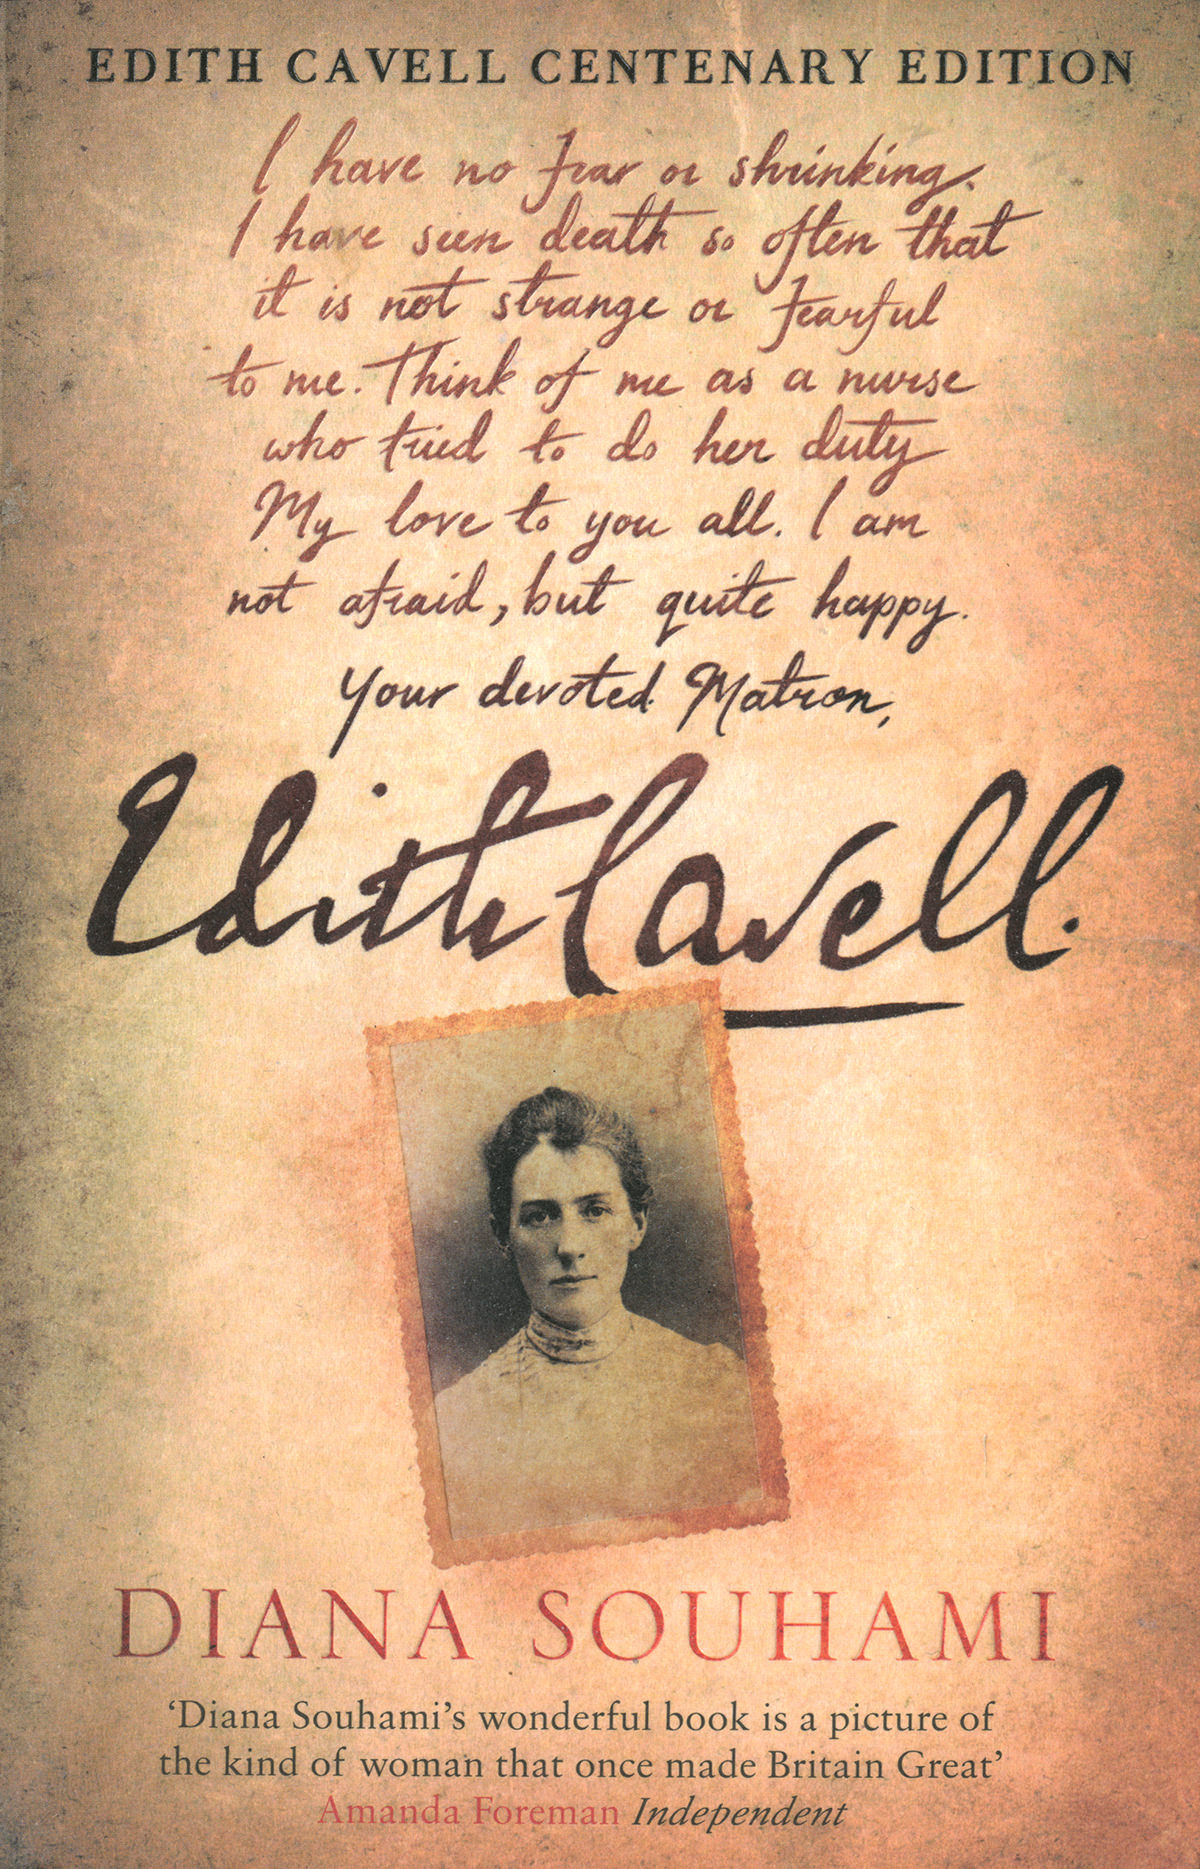 'Edith Cavell' by Diana Souhami